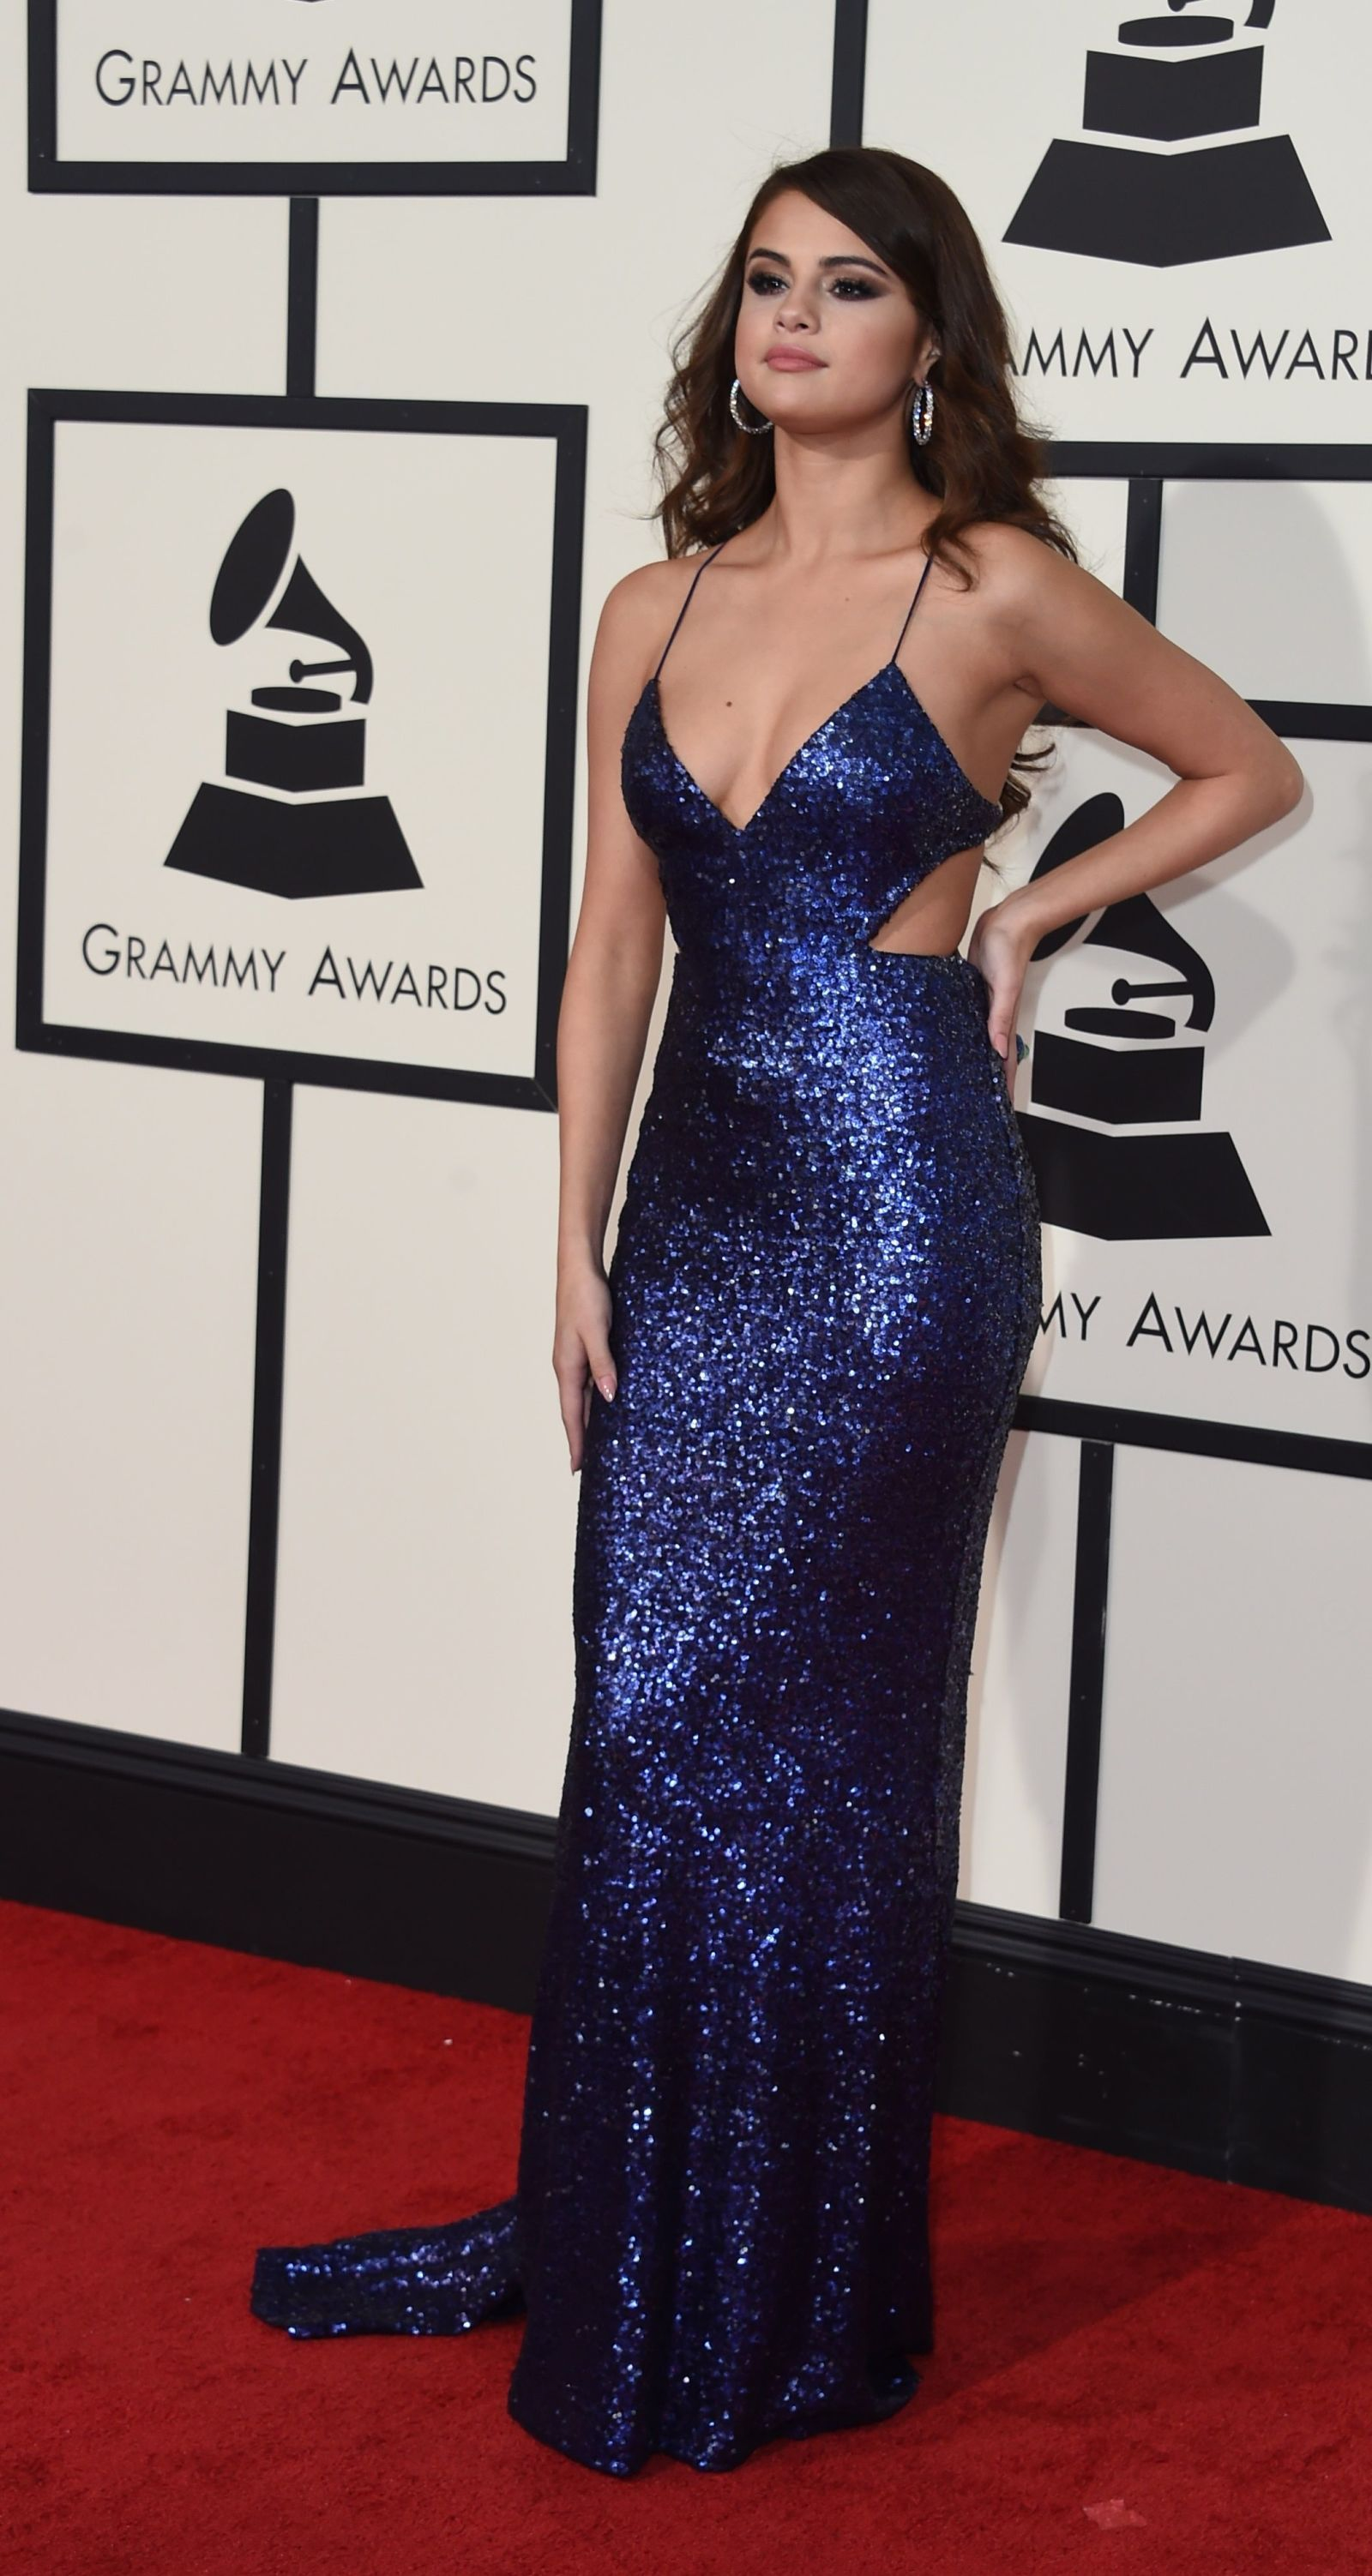 If You Think Selena Gomez s Grammys Dress is Hot From the Front ... 3a5844041694